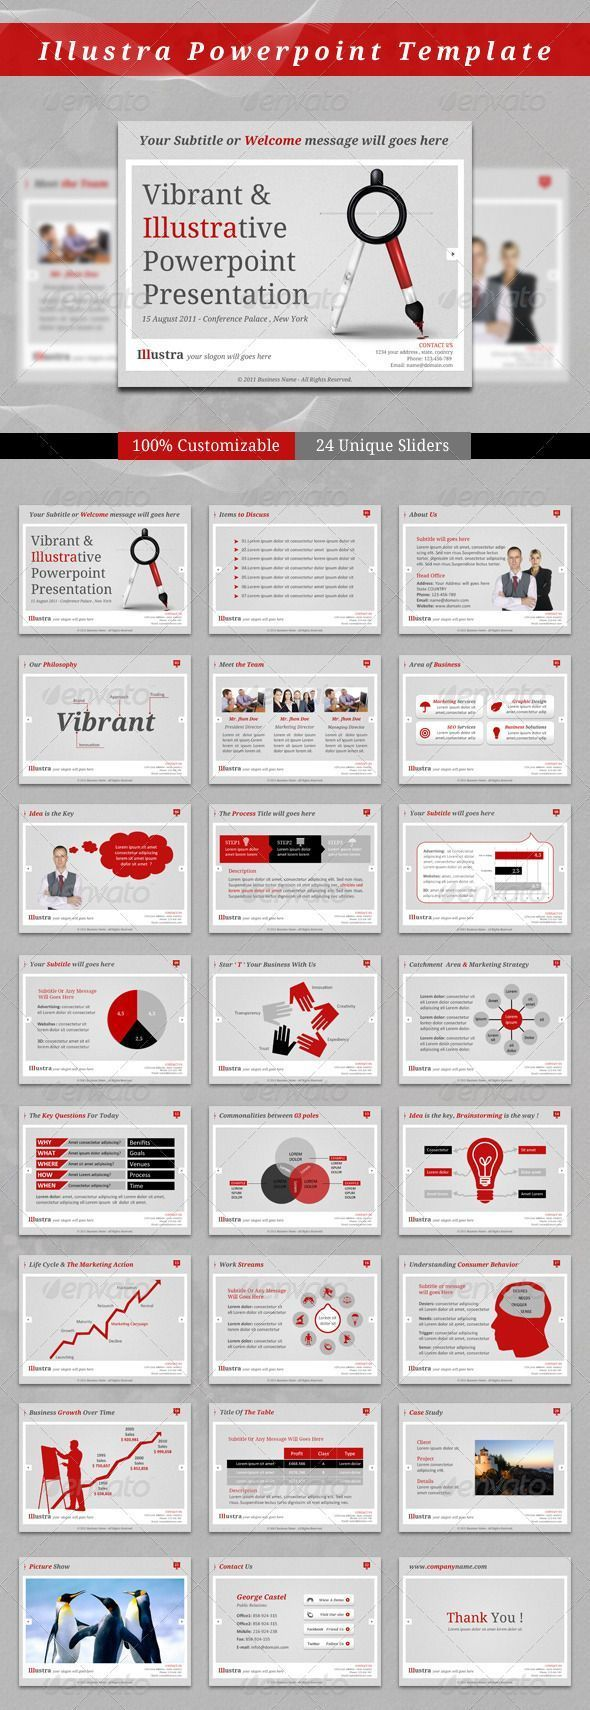 8 best PPT images on Pinterest | Plantillas de power point, Gráficos ...